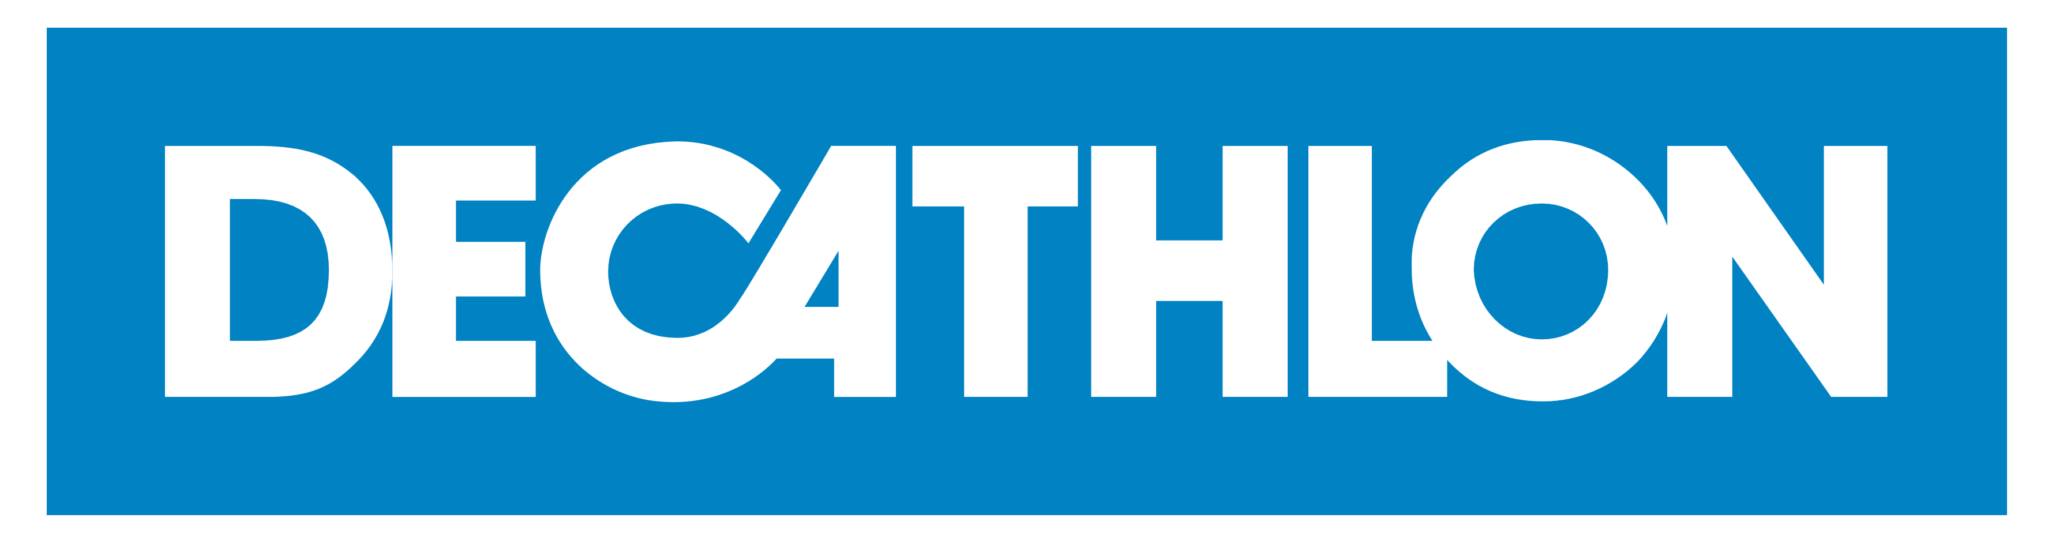 Logo decathlon - integration platform employee engagement